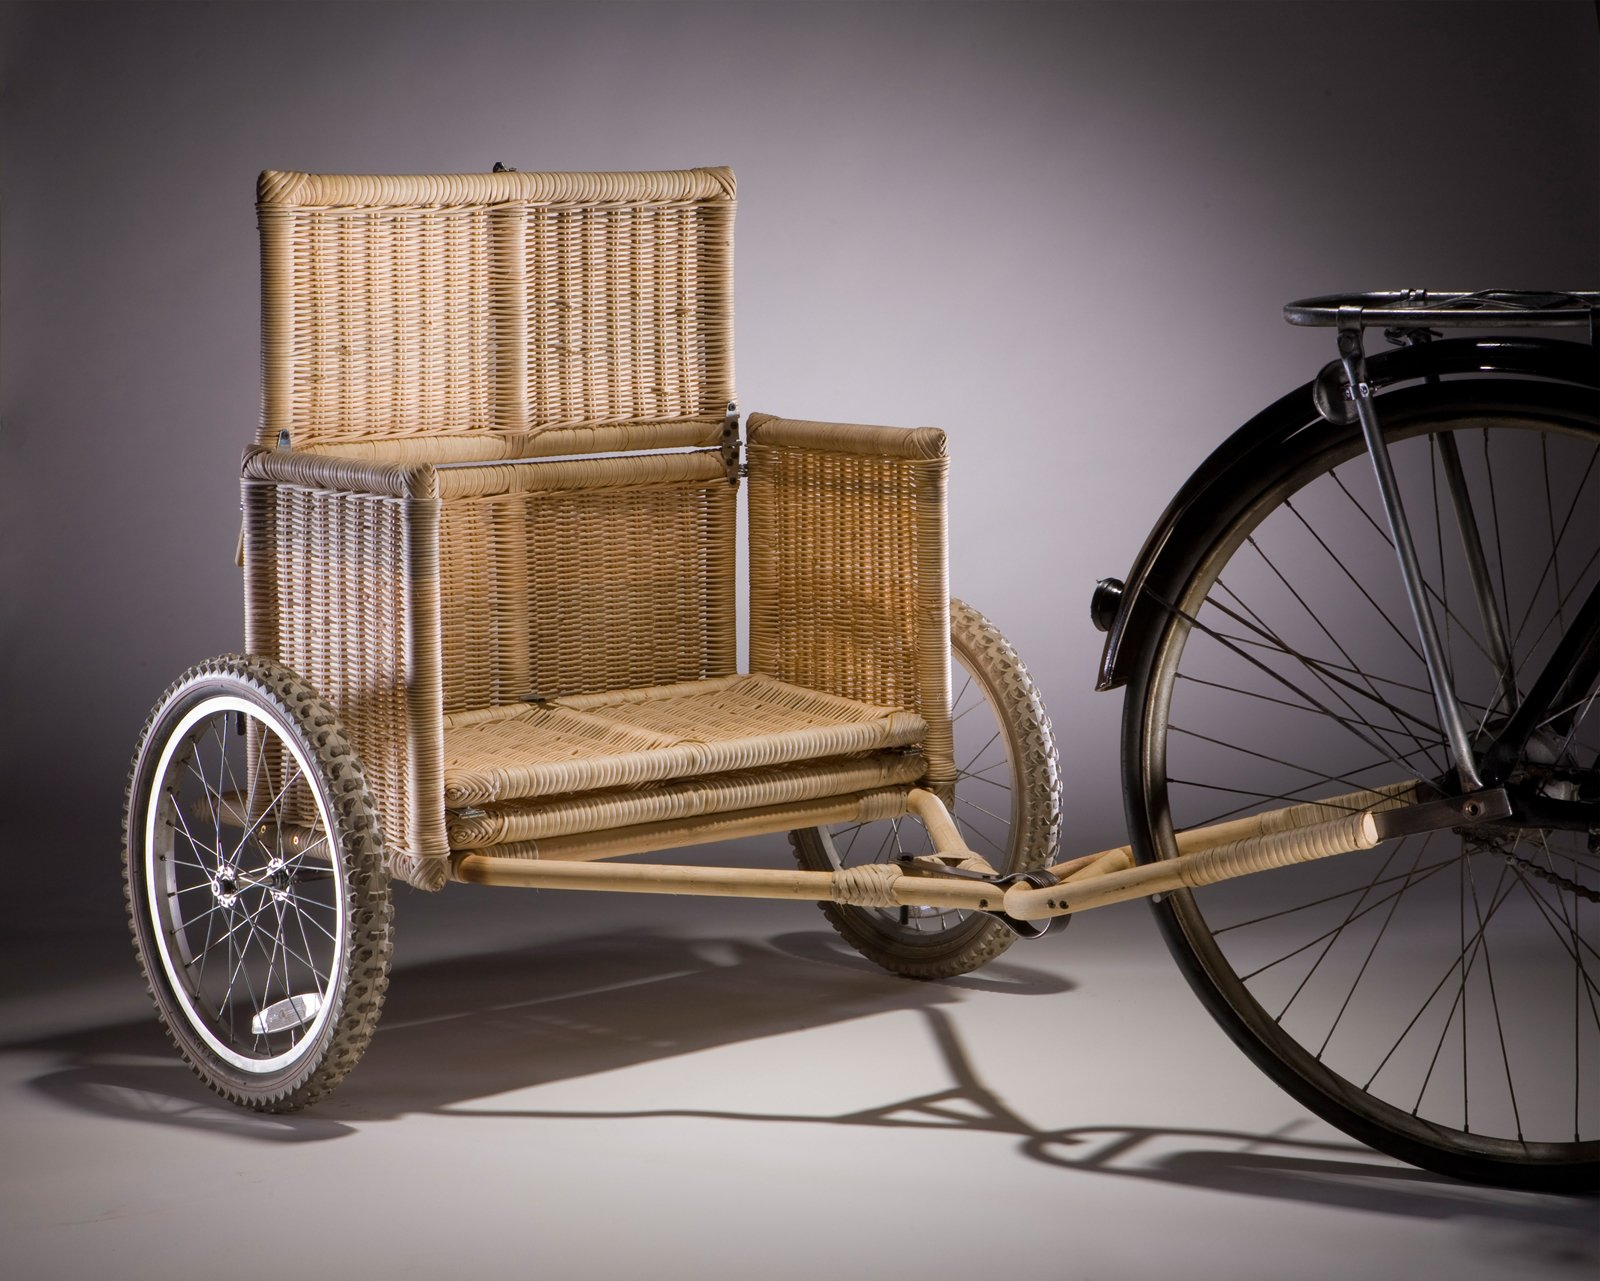 Samarth Bicycle Trailer, prototype. Radhika Bhalla (Indian, b. 1983). Designed United States, deployed India, 2008–present. Locally sourced bamboo, rattan, iron, jute, coconut fiber, wheels. Photo: Vahe D'Ala  Bicycle, Bicycle from Why Design Now?